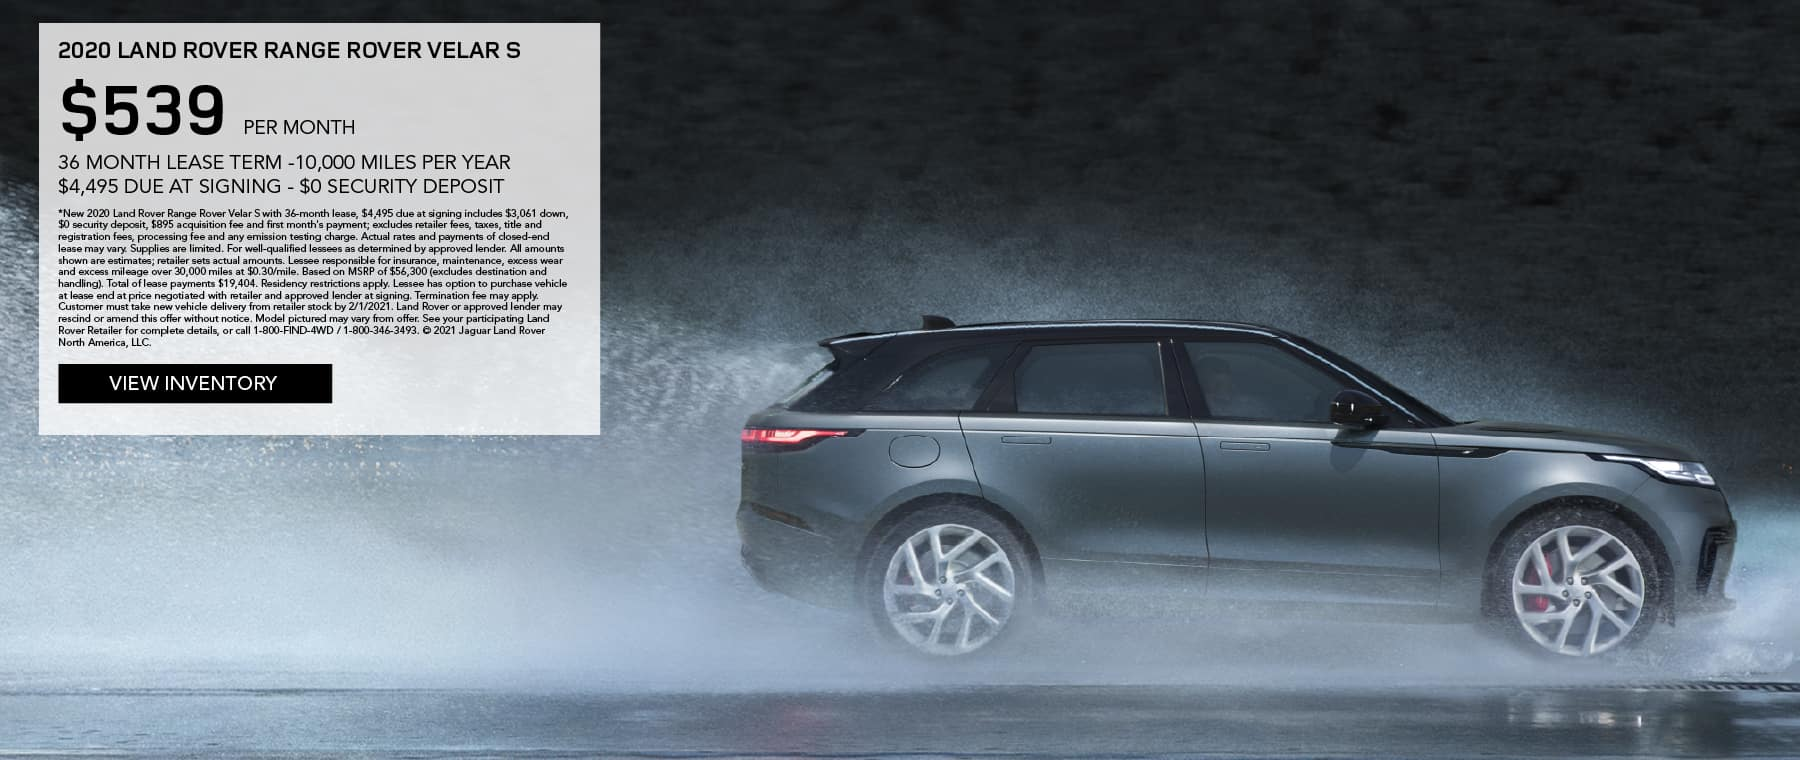 2020 RANGE ROVER VELAR S. $539 PER MONTH. 36 MONTH LEASE TERM. $4,495 CASH DUE AT SIGNING. $0 SECURITY DEPOSIT. 10,000 MILES PER YEAR. EXCLUDES RETAILER FEES, TAXES, TITLE AND REGISTRATION FEES, PROCESSING FEE AND ANY EMISSION TESTING CHARGE. ENDS 2/1/2021. VIEW INVENTORY. BLUE RANGE ROVER VELAR DRIVING THROUGH RAIN DOWN ROAD.